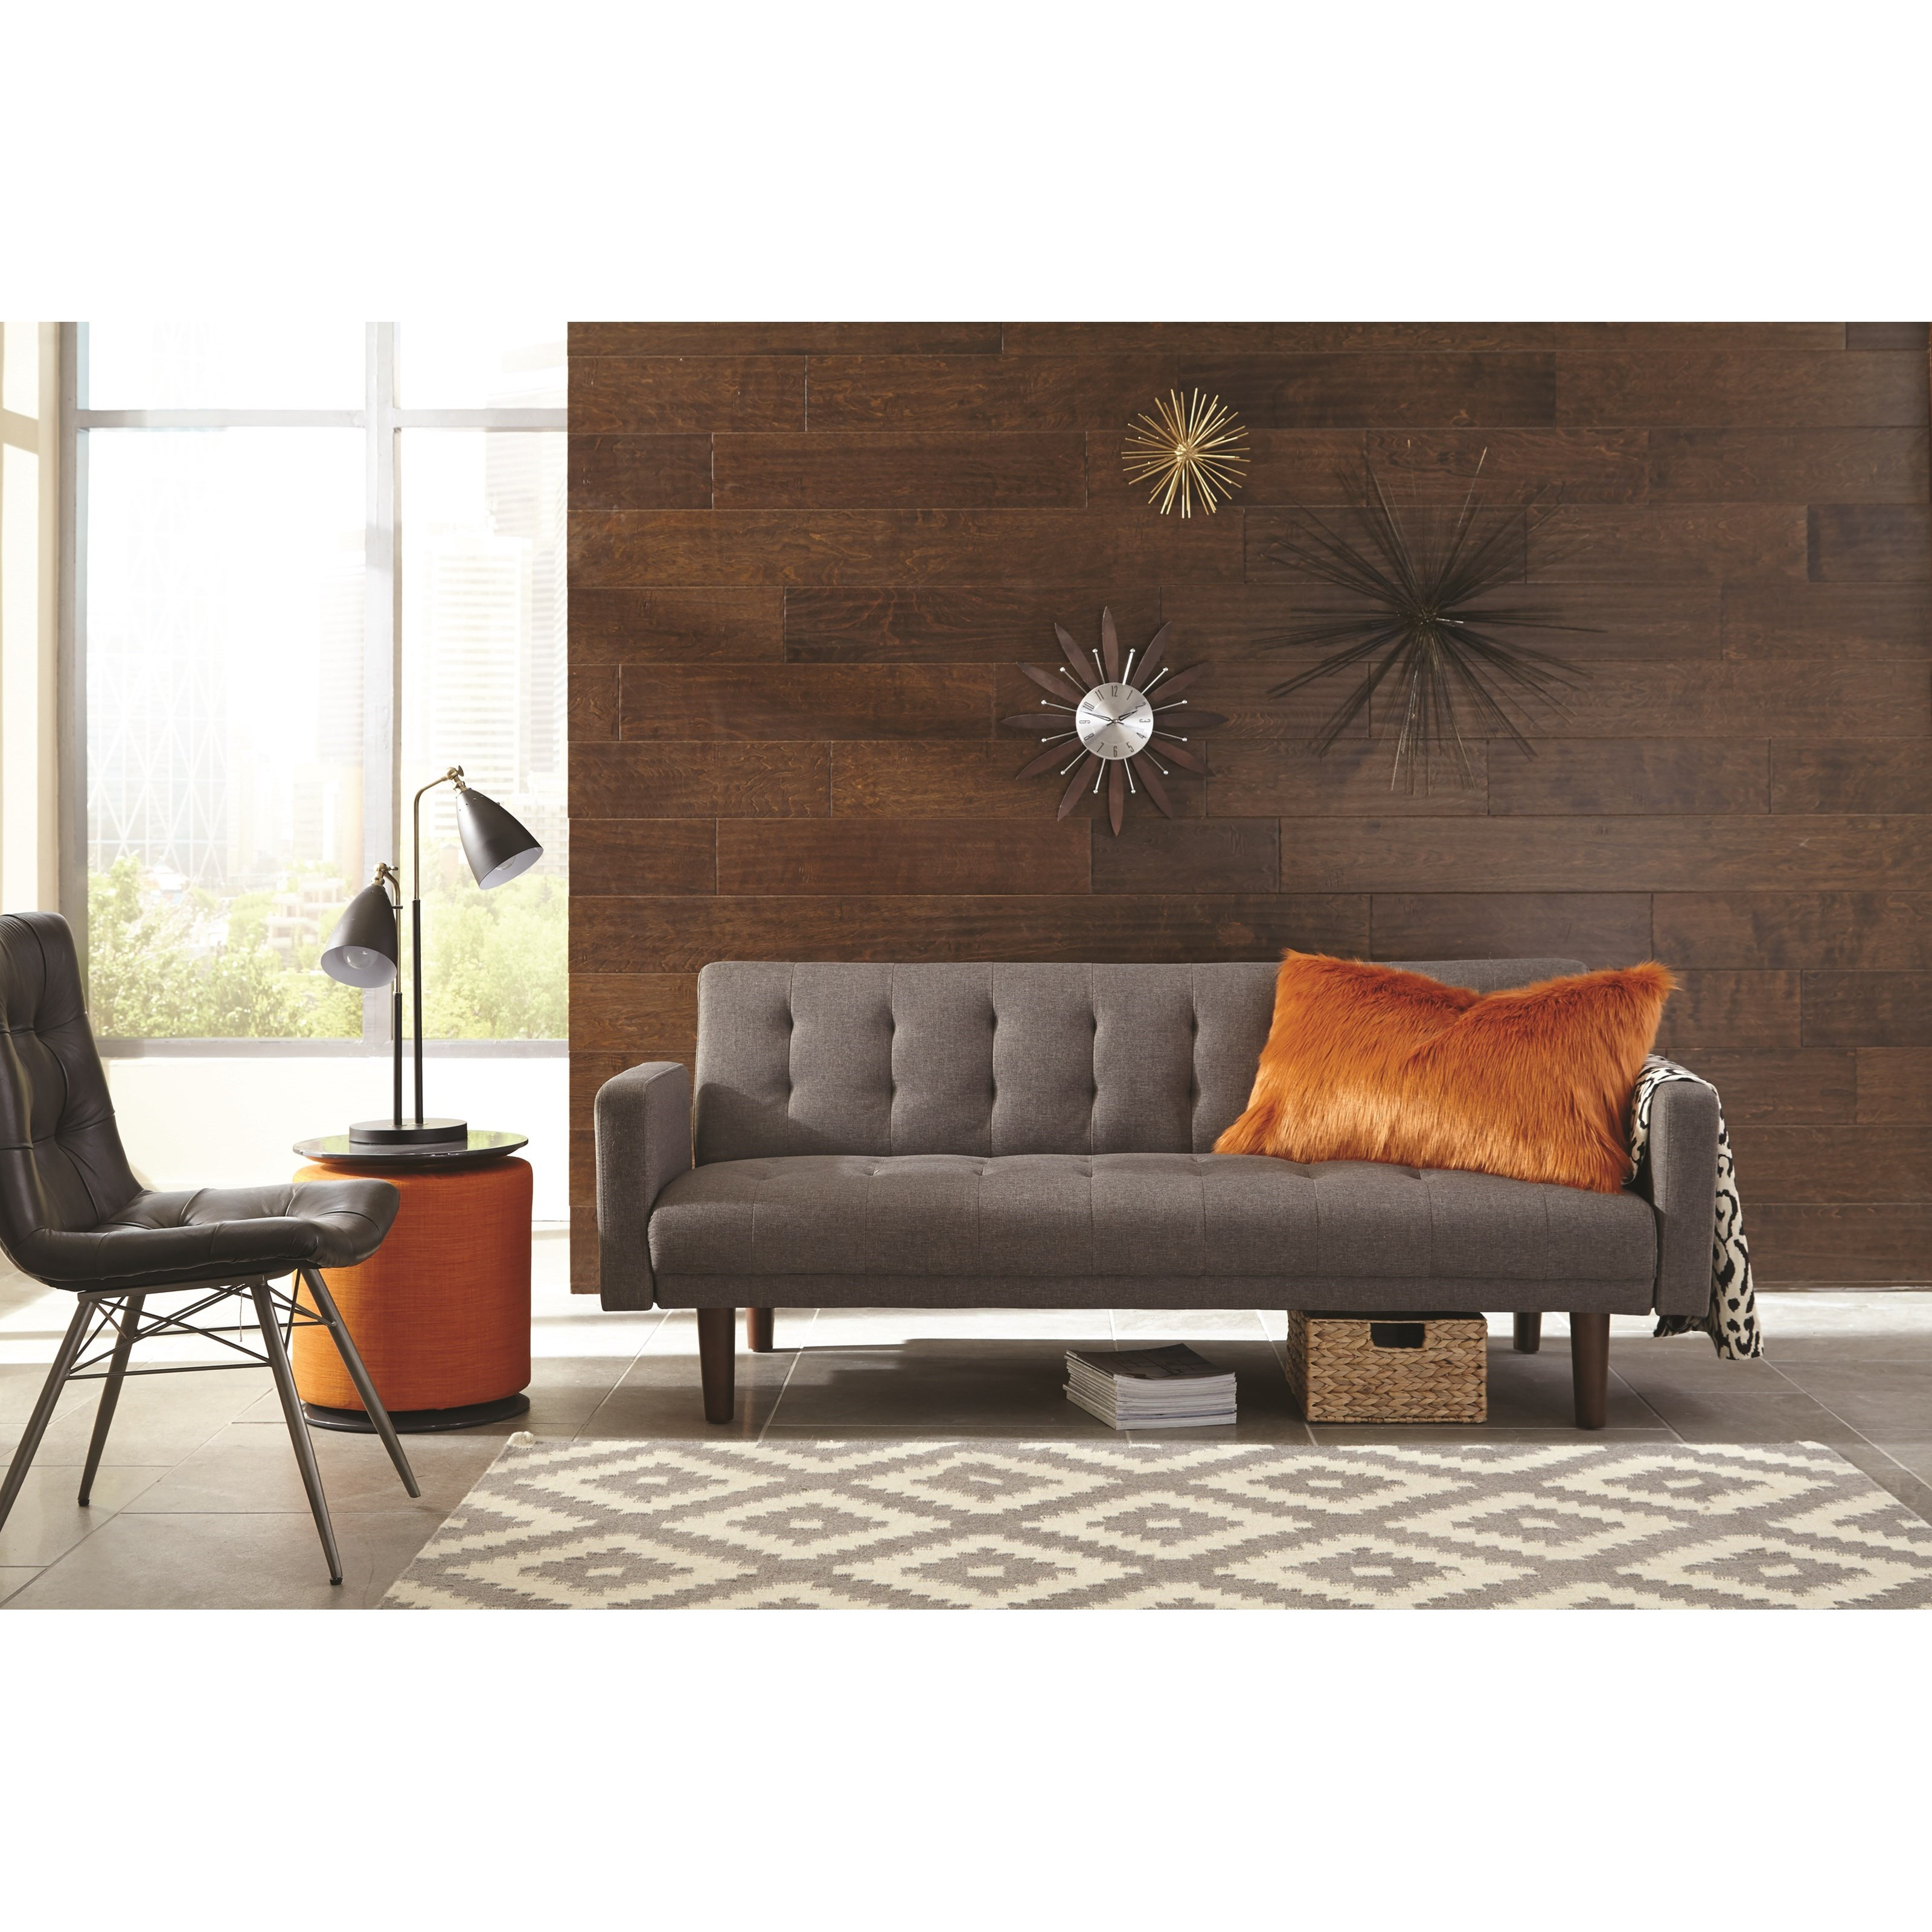 Levitz Home Furnishings: Scott Living Skyler 360010 Modern Sofa Bed With Button